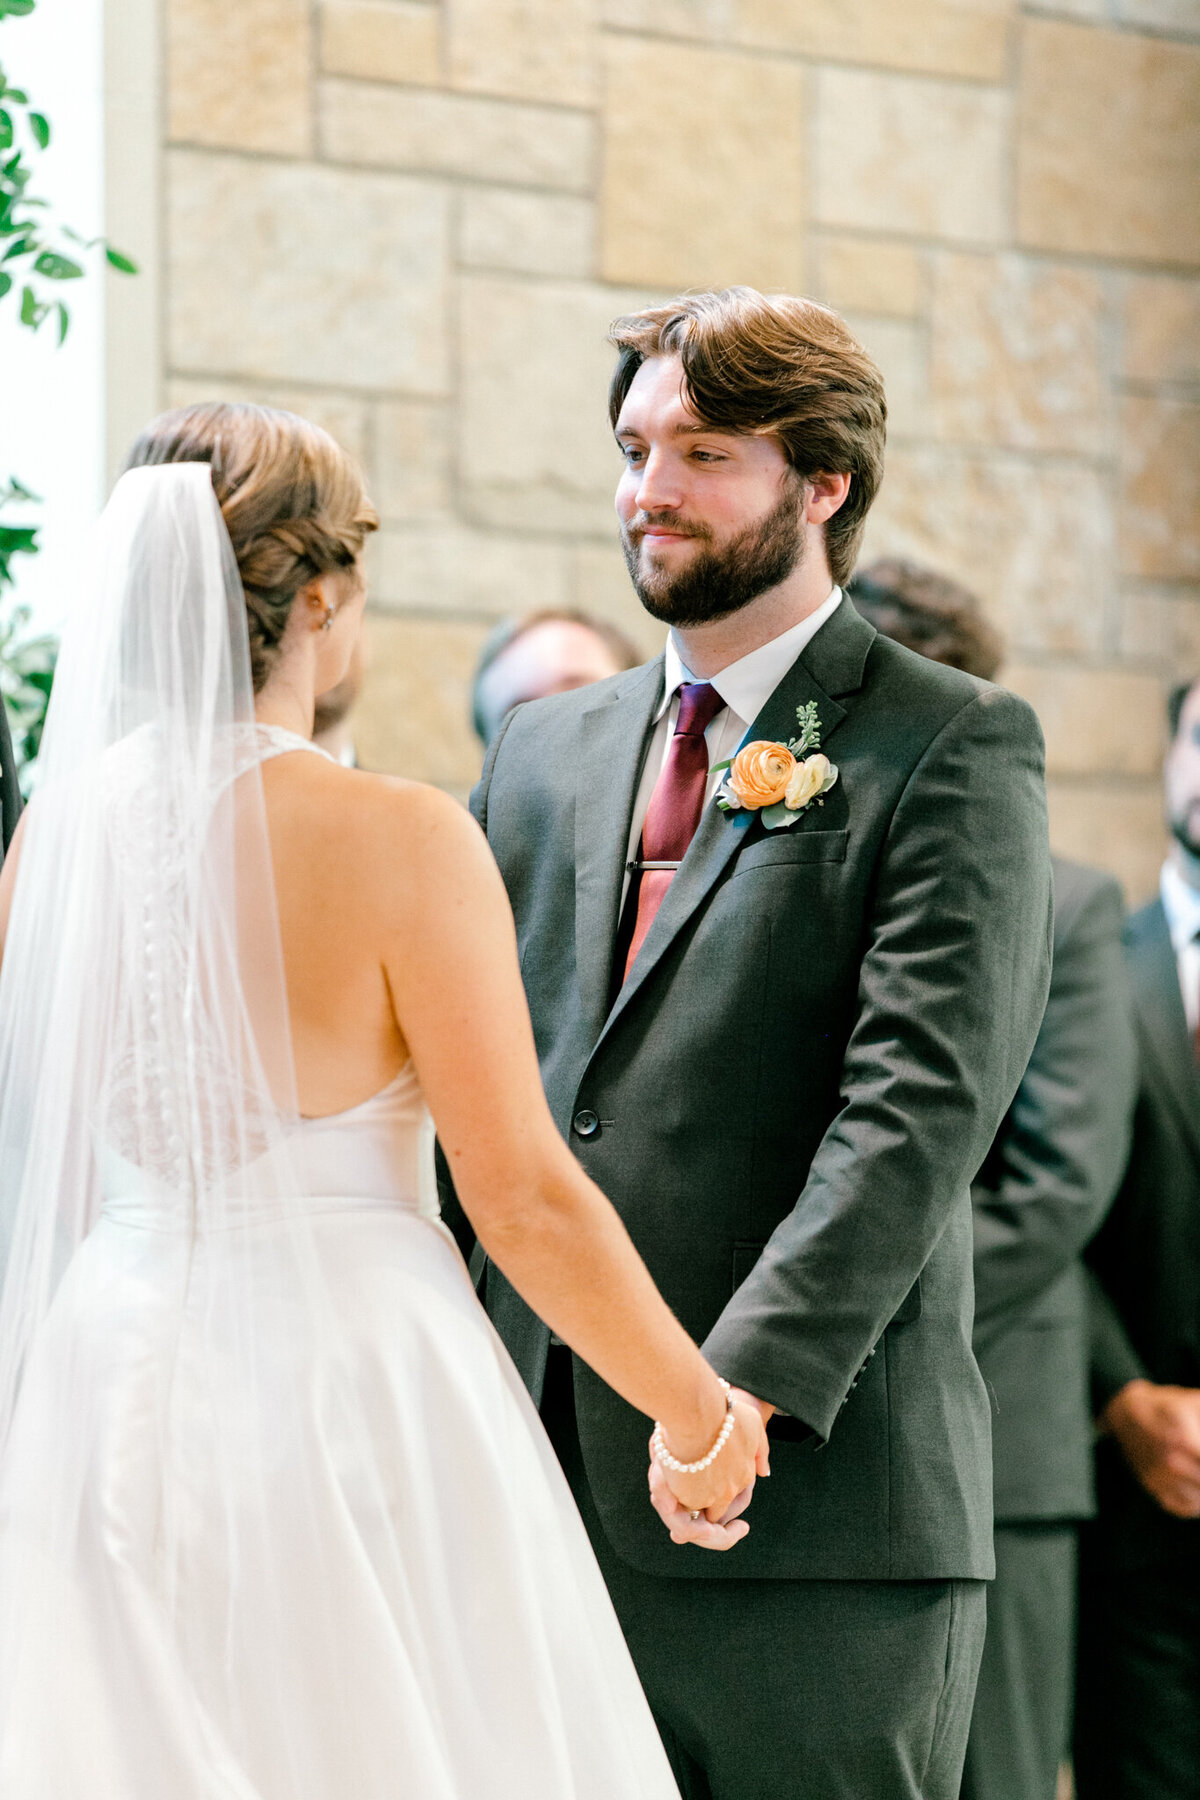 Kaylee & Michael's Wedding at Watermark Community Church | Dallas Wedding Photographer | Sami Kathryn Photography-112